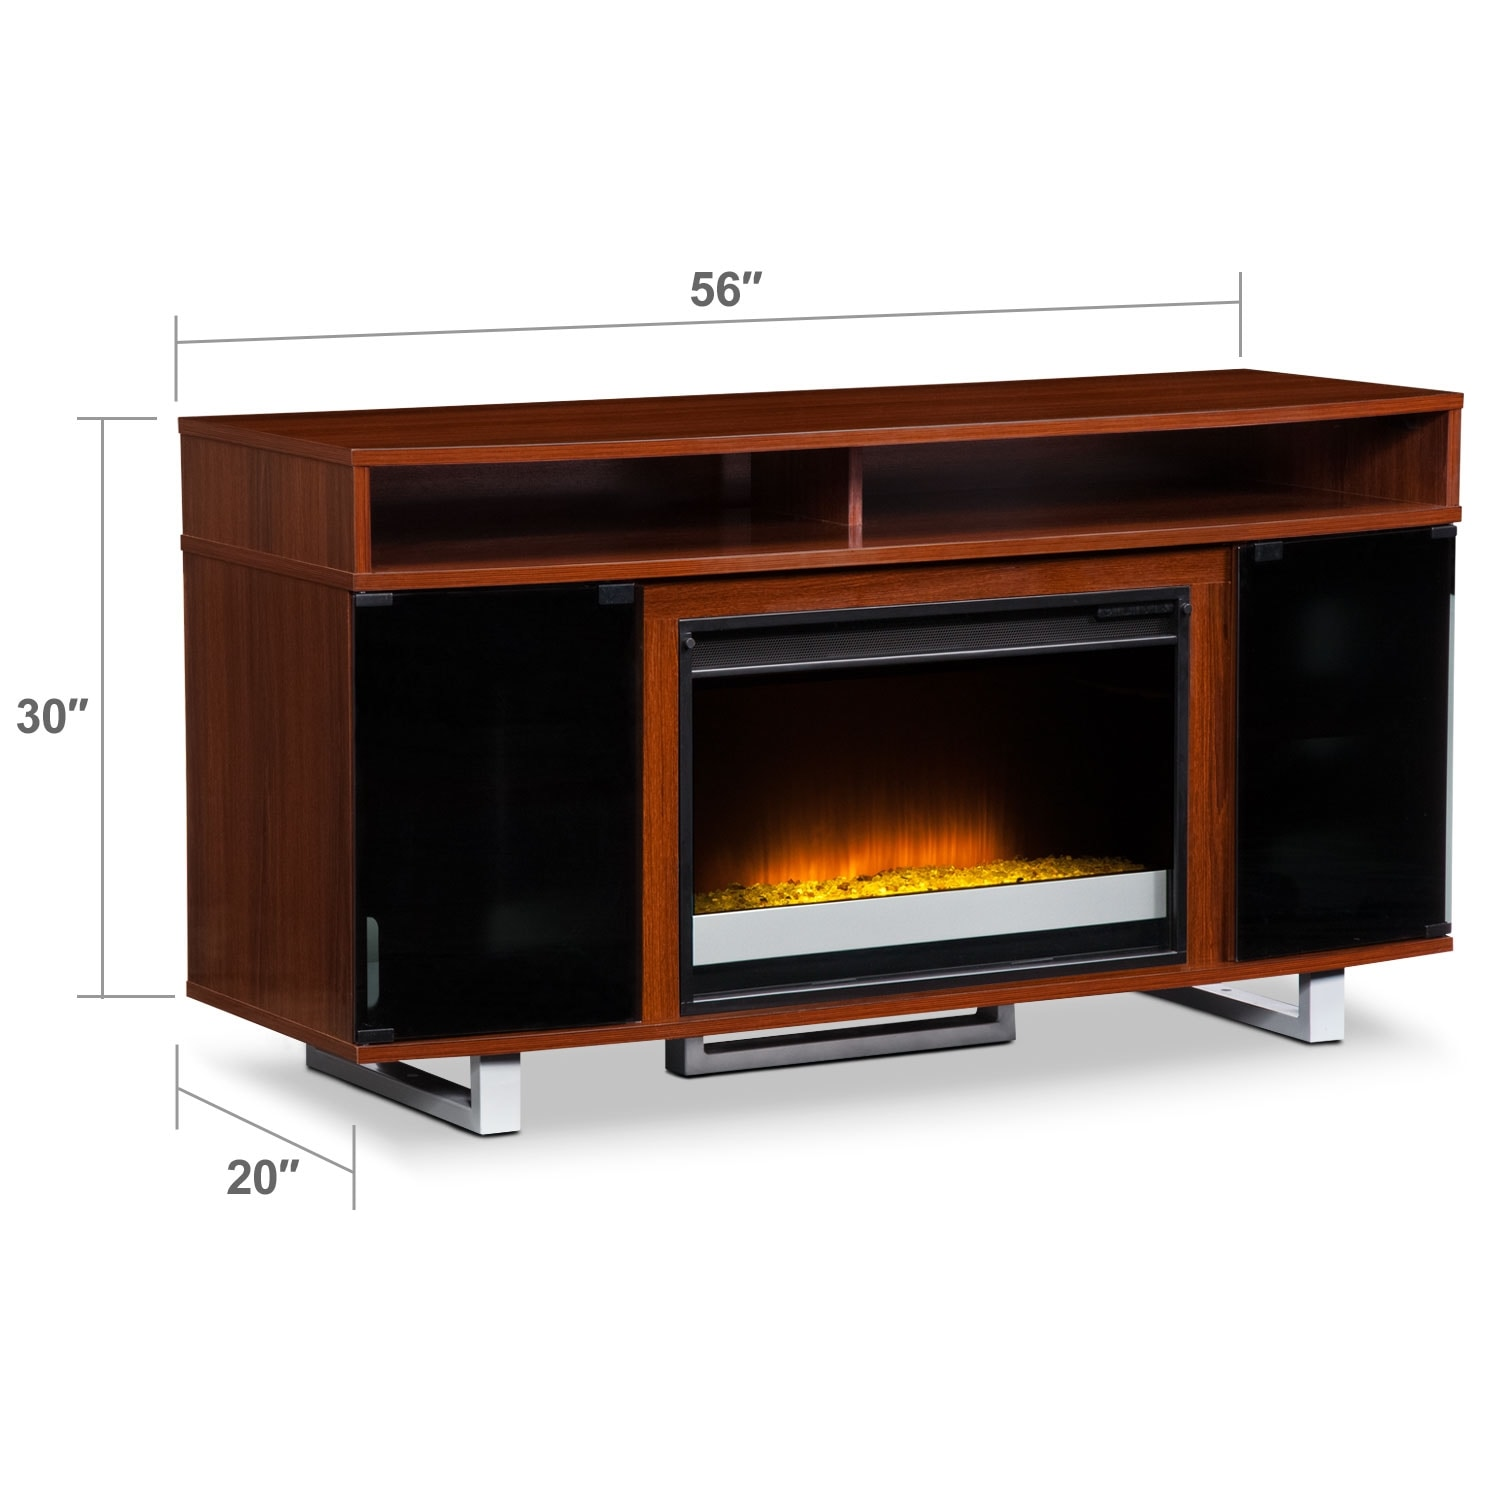 """Entertainment Furniture - Pacer 56"""" Contemporary Fireplace TV Stand - Cherry"""